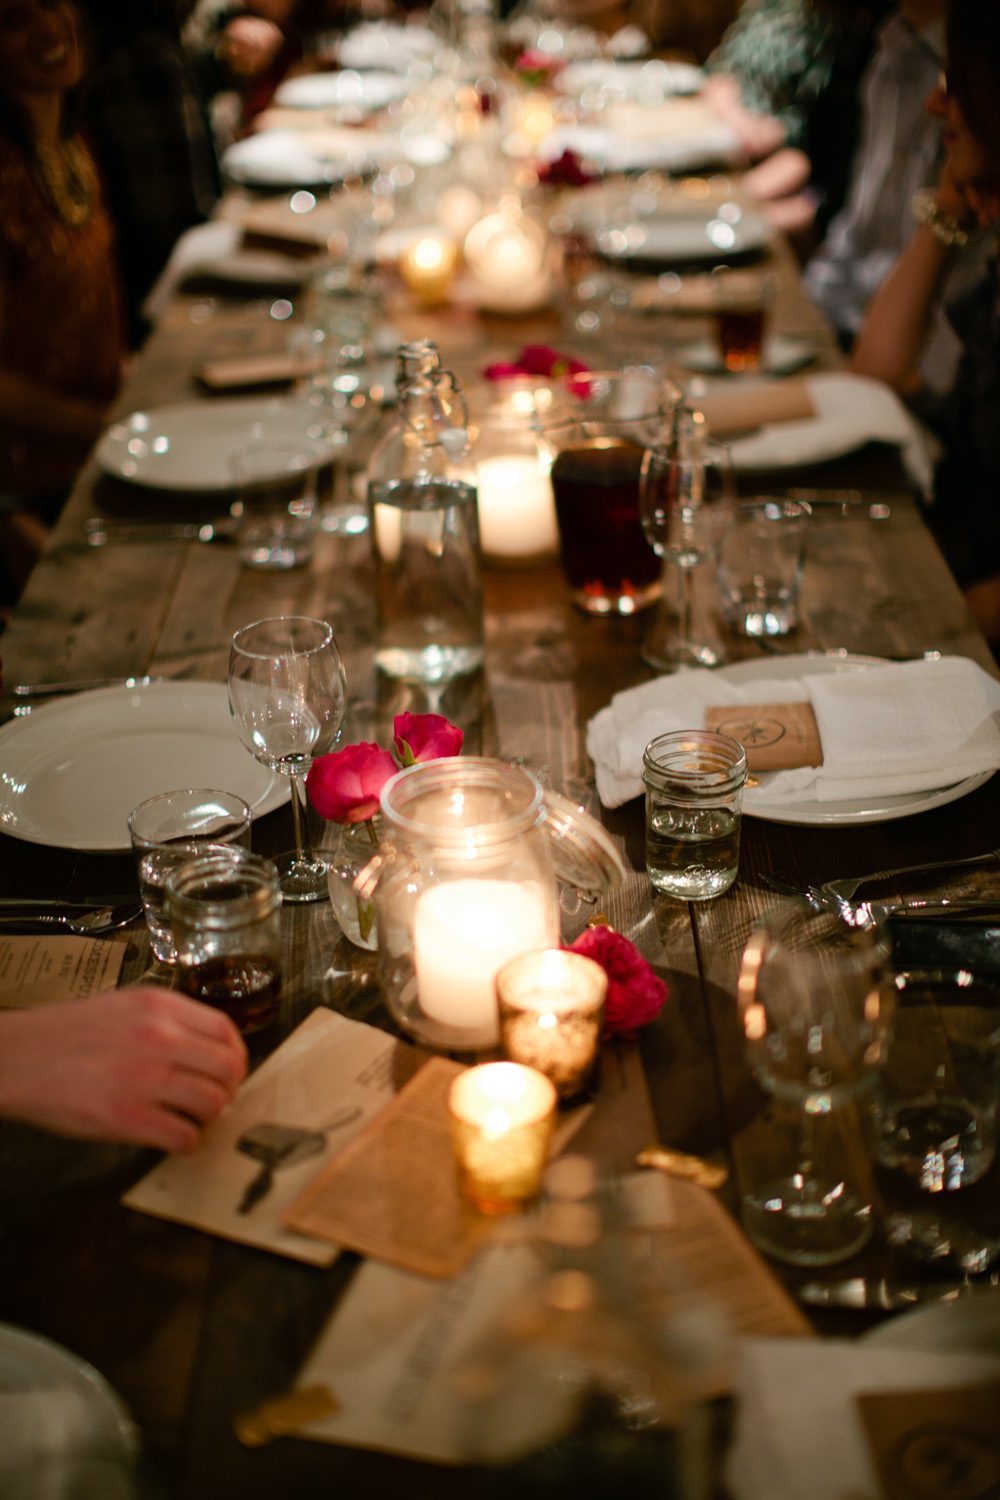 Homespun ATL Dinner Feb 2013Atlanta, GA Photography by Morgan Blake_Low Res020.jpg